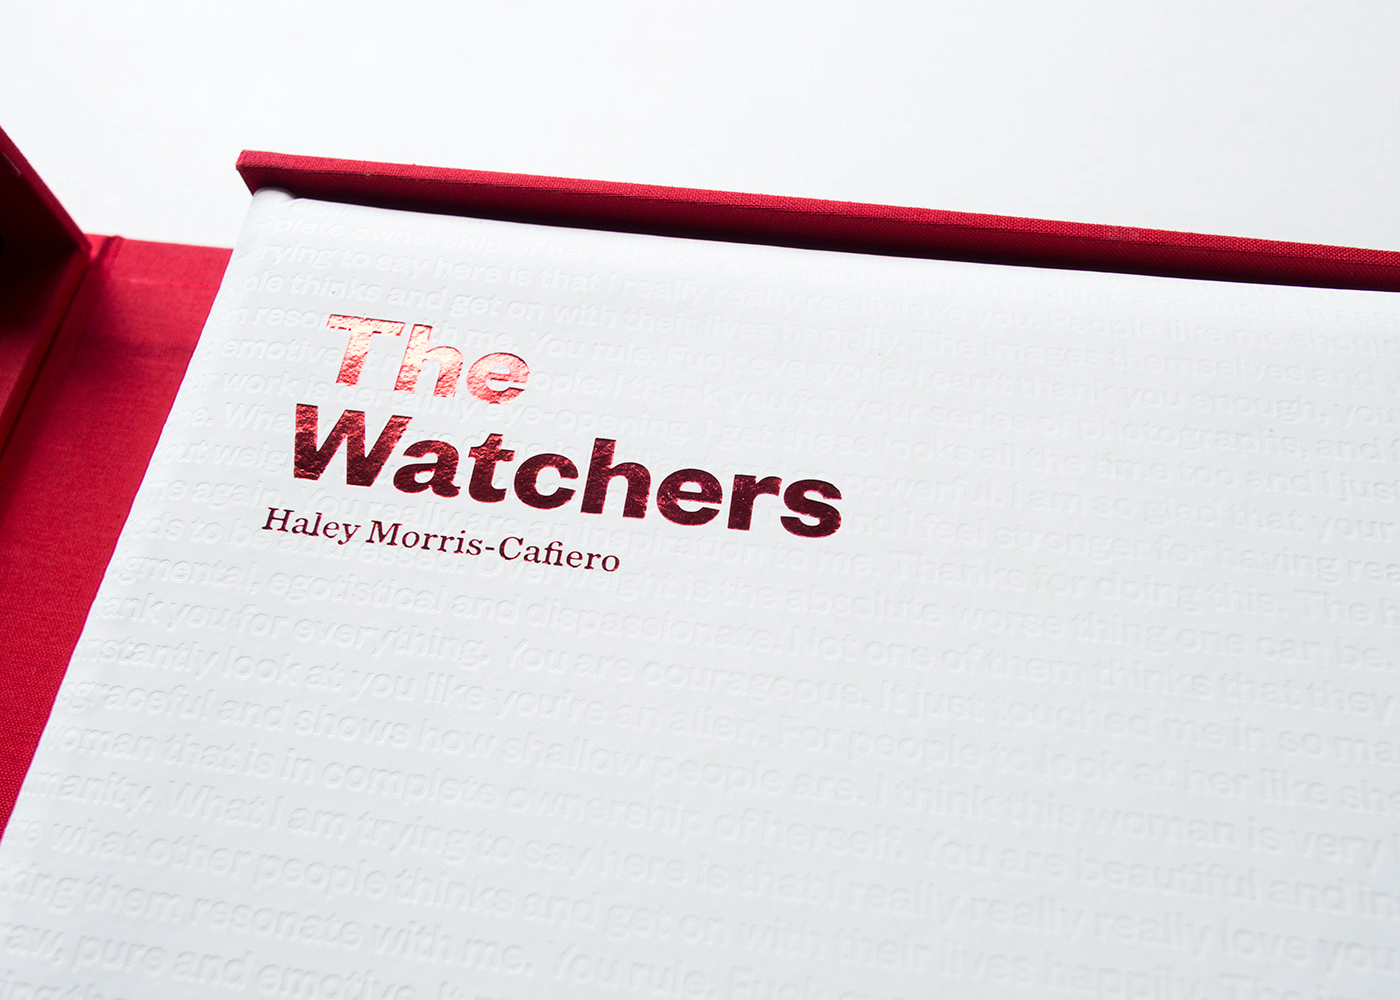 mgnt-TheWatchers-cover